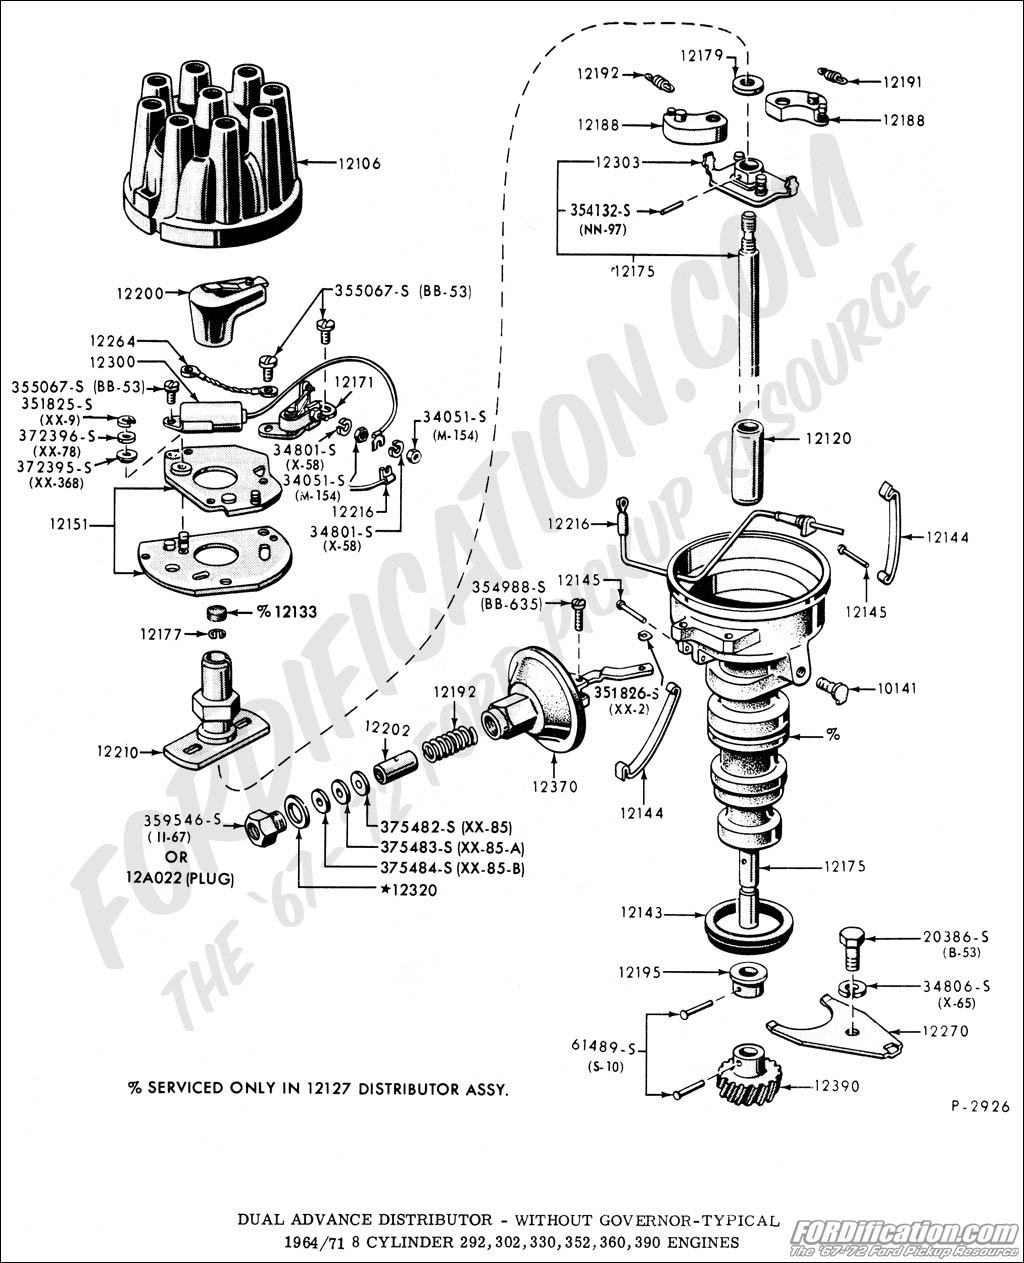 Steel Vacuum Line Part #? - Ford Truck Enthusiasts Forums